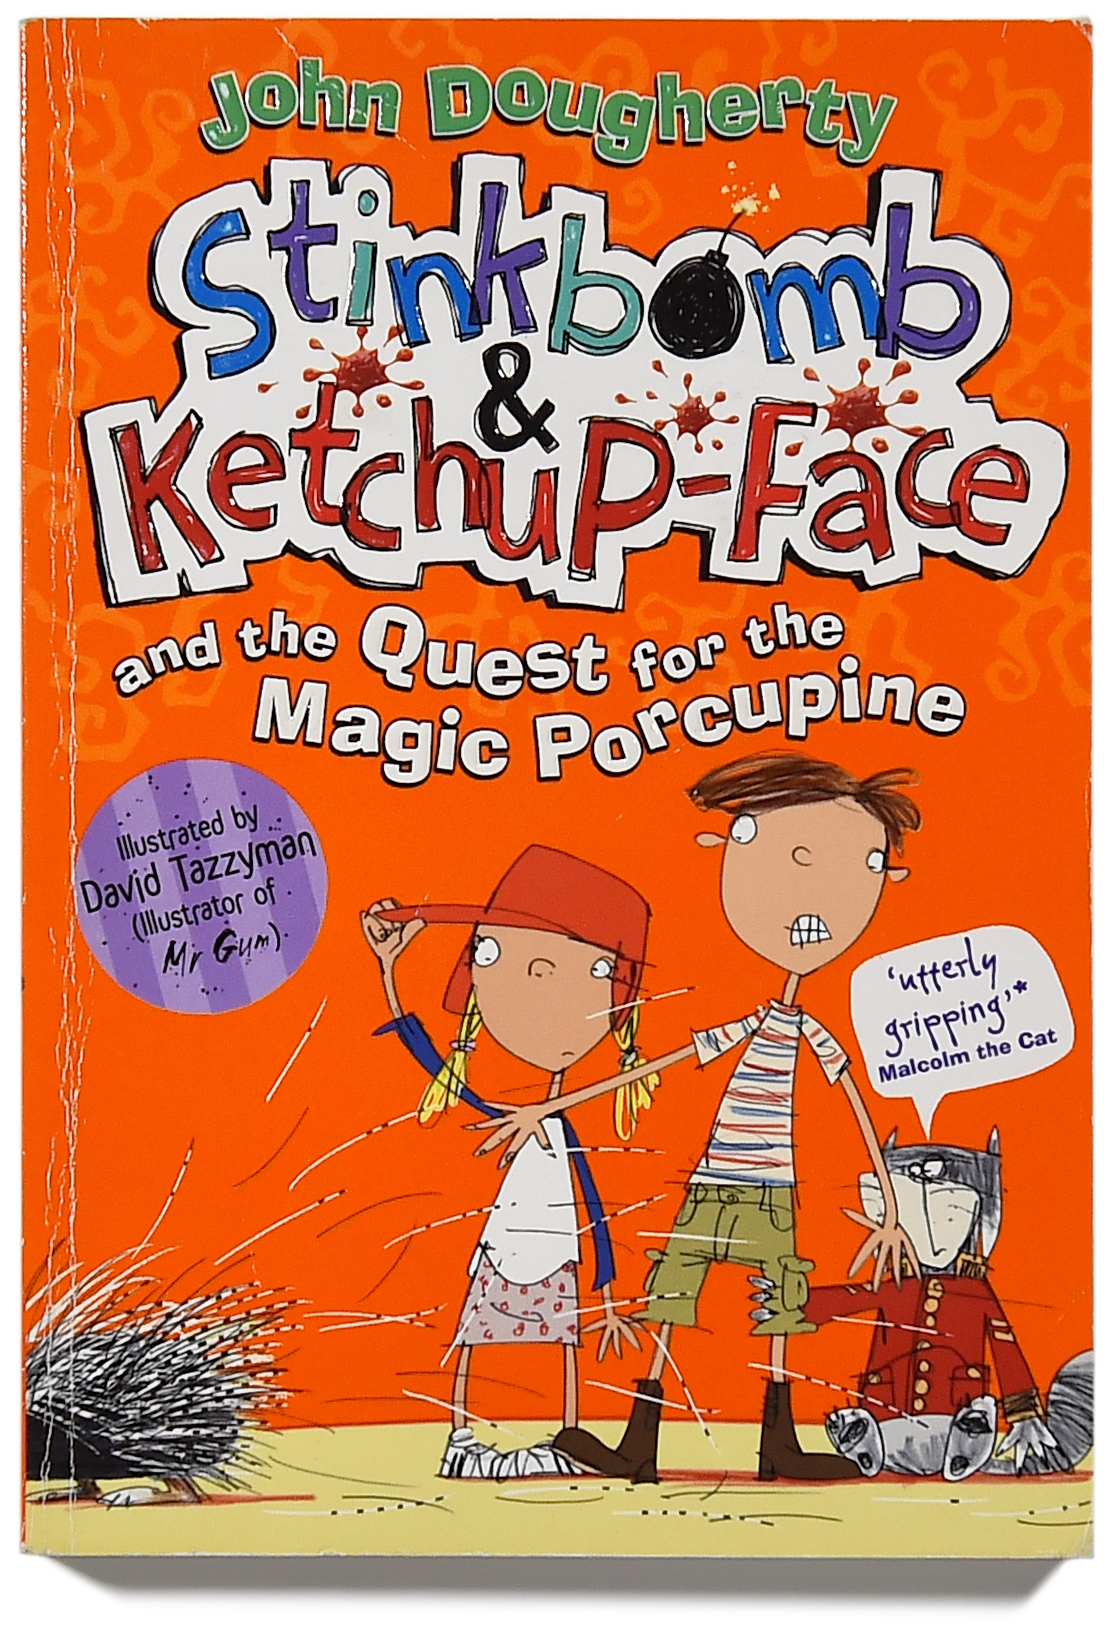 Stinkbomb & Ketchup-Face series